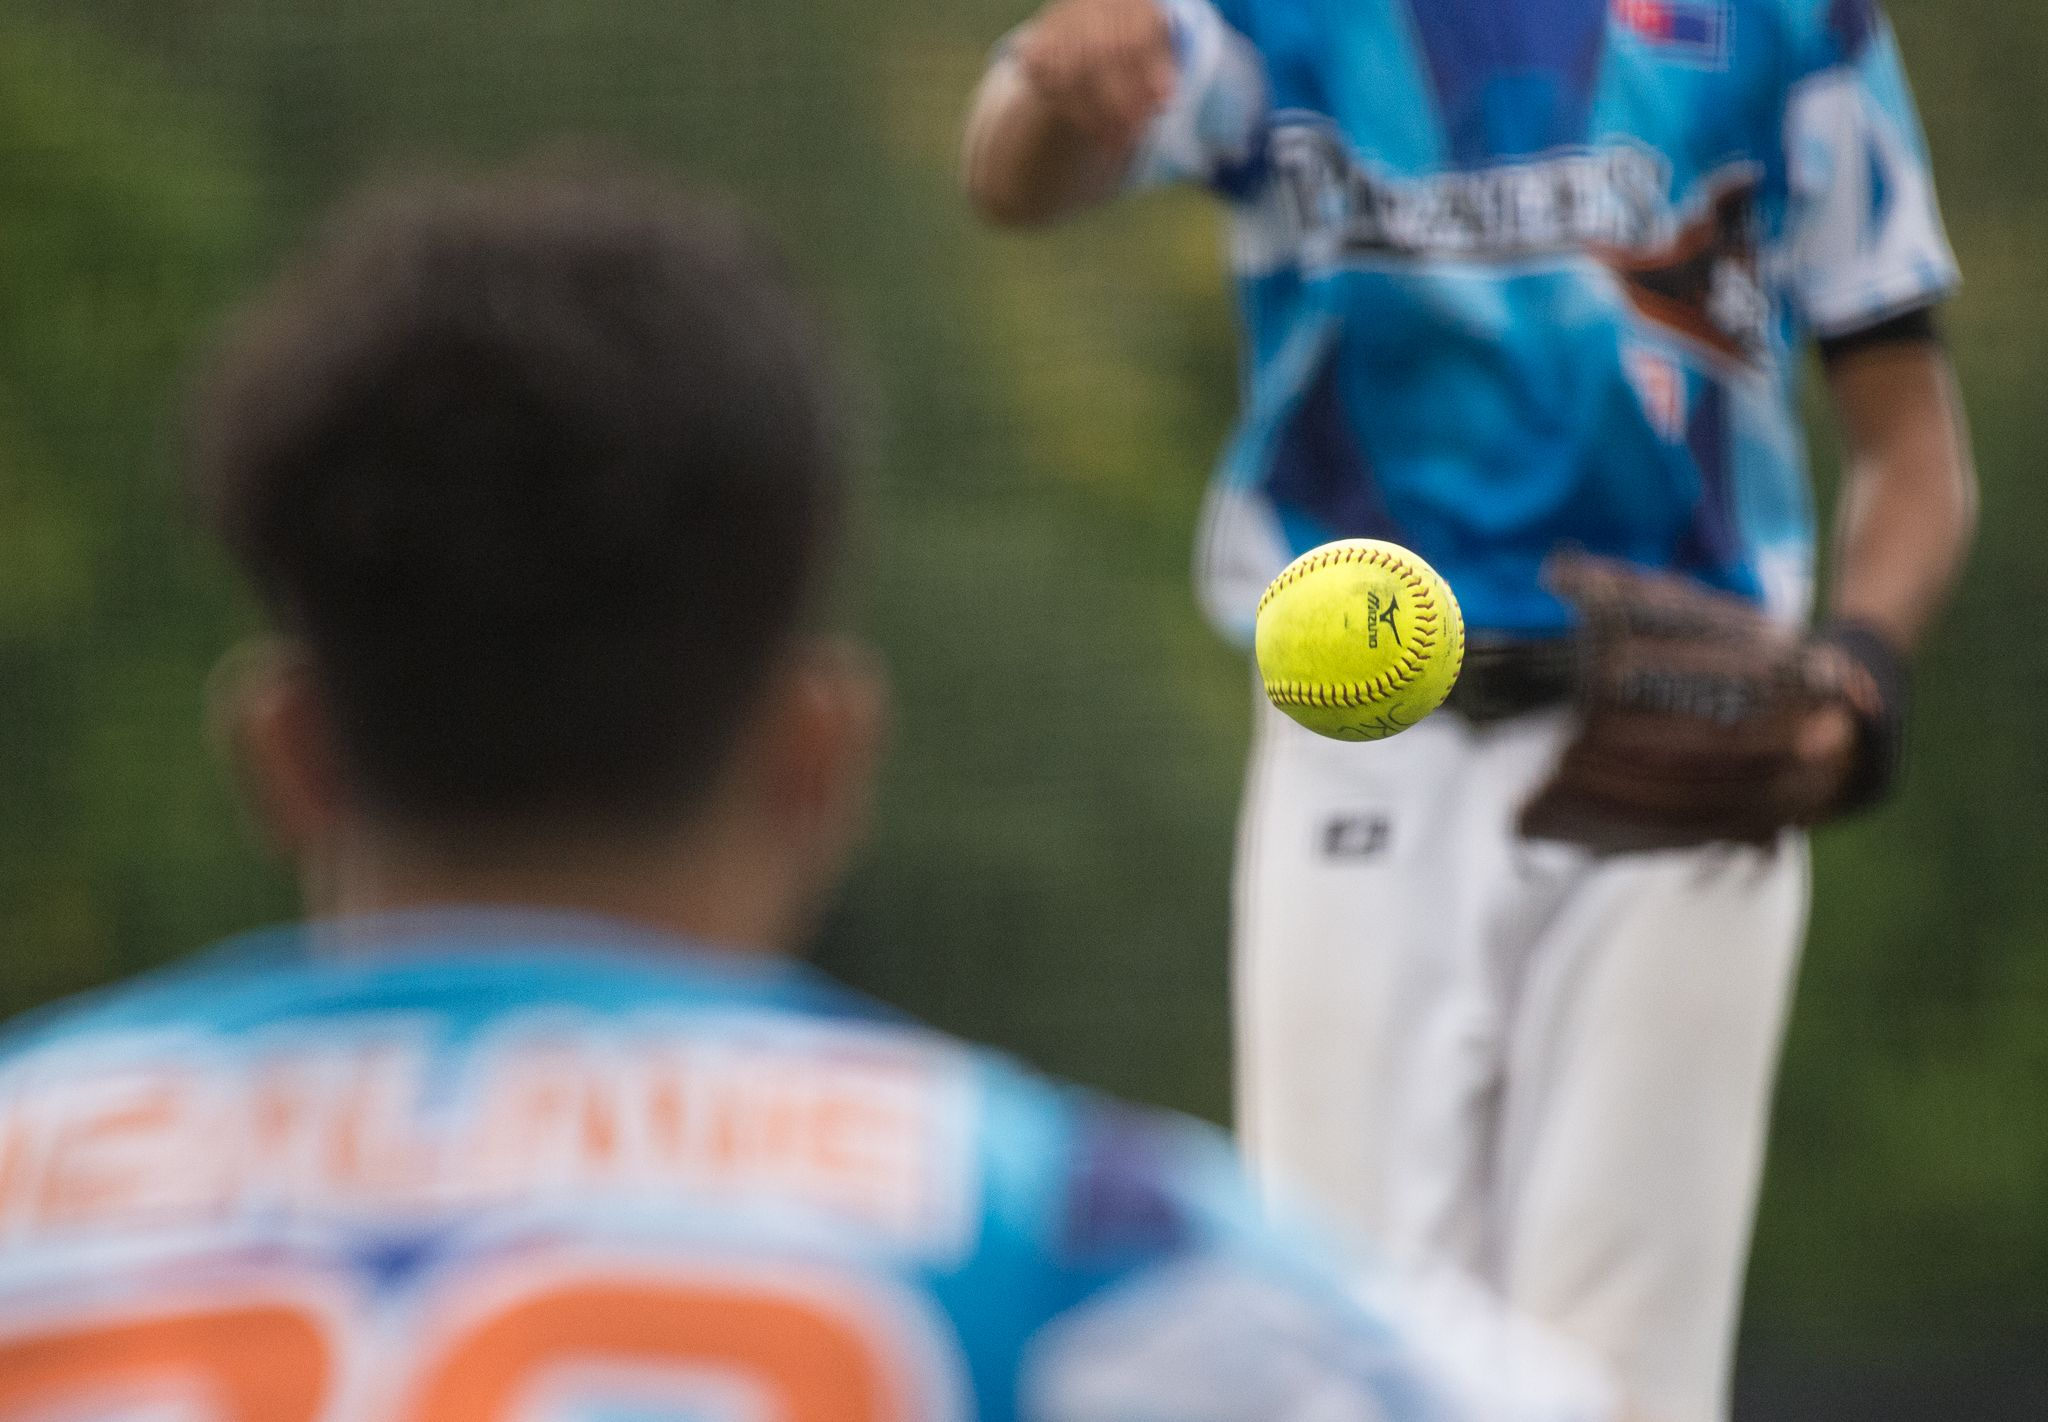 A Malaysian player watches the the ball during the ORA Gryphon Cup slow pitch tournament at Raffles Institution.